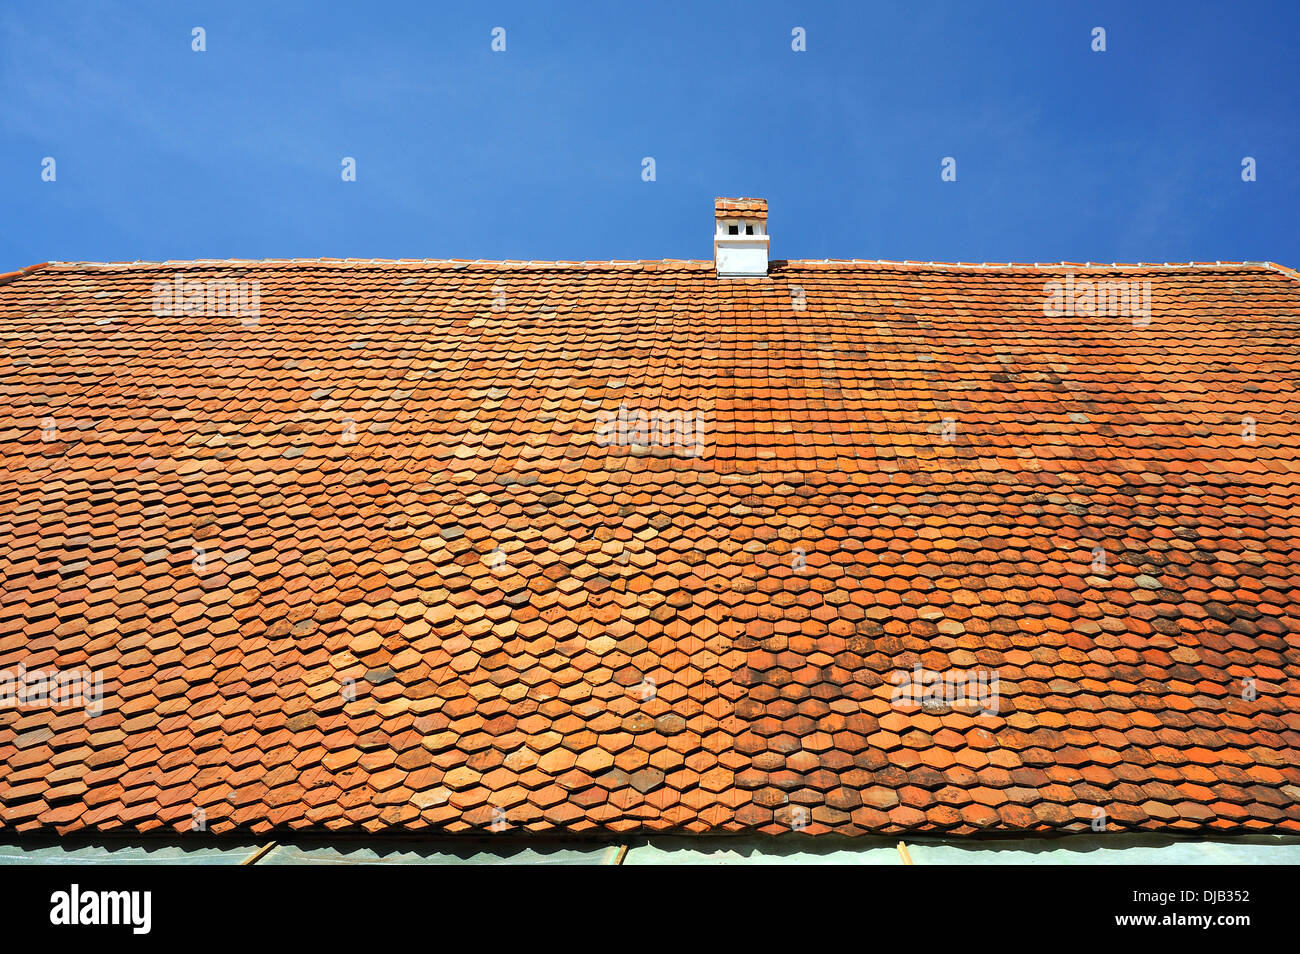 Roof of an old farmhouse with plain tiles, 1695, Franconian Open Air Museum, Bad Windsheim, Middle Franconia, Bavaria, Germany - Stock Image